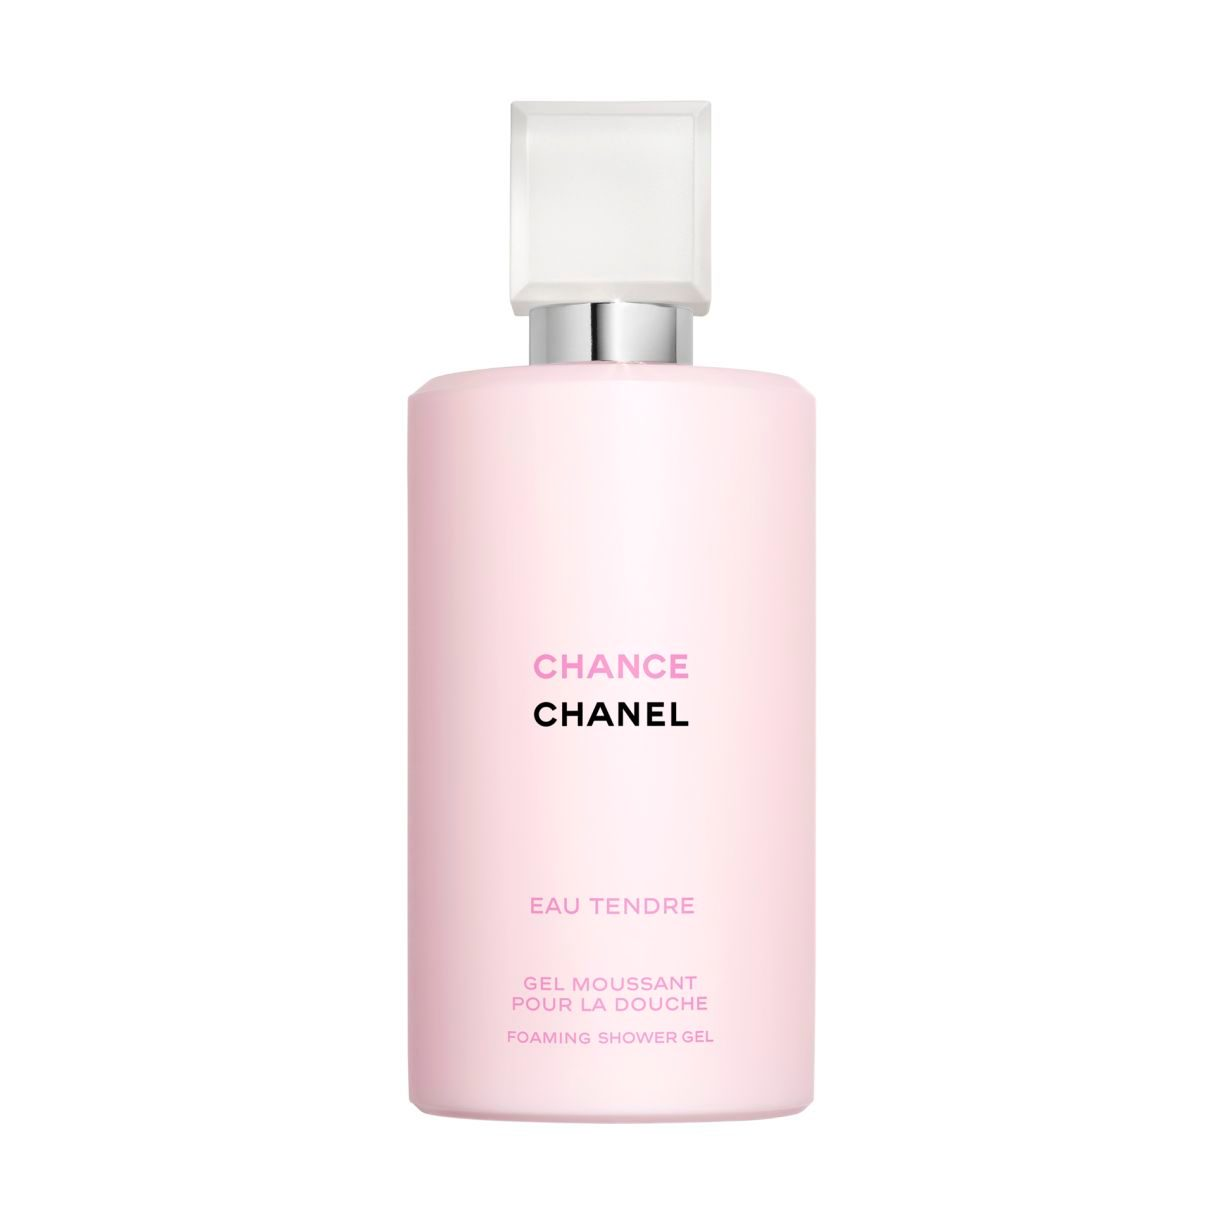 CHANCE EAU TENDRE GEL MOUSSE PARA A DUCHA